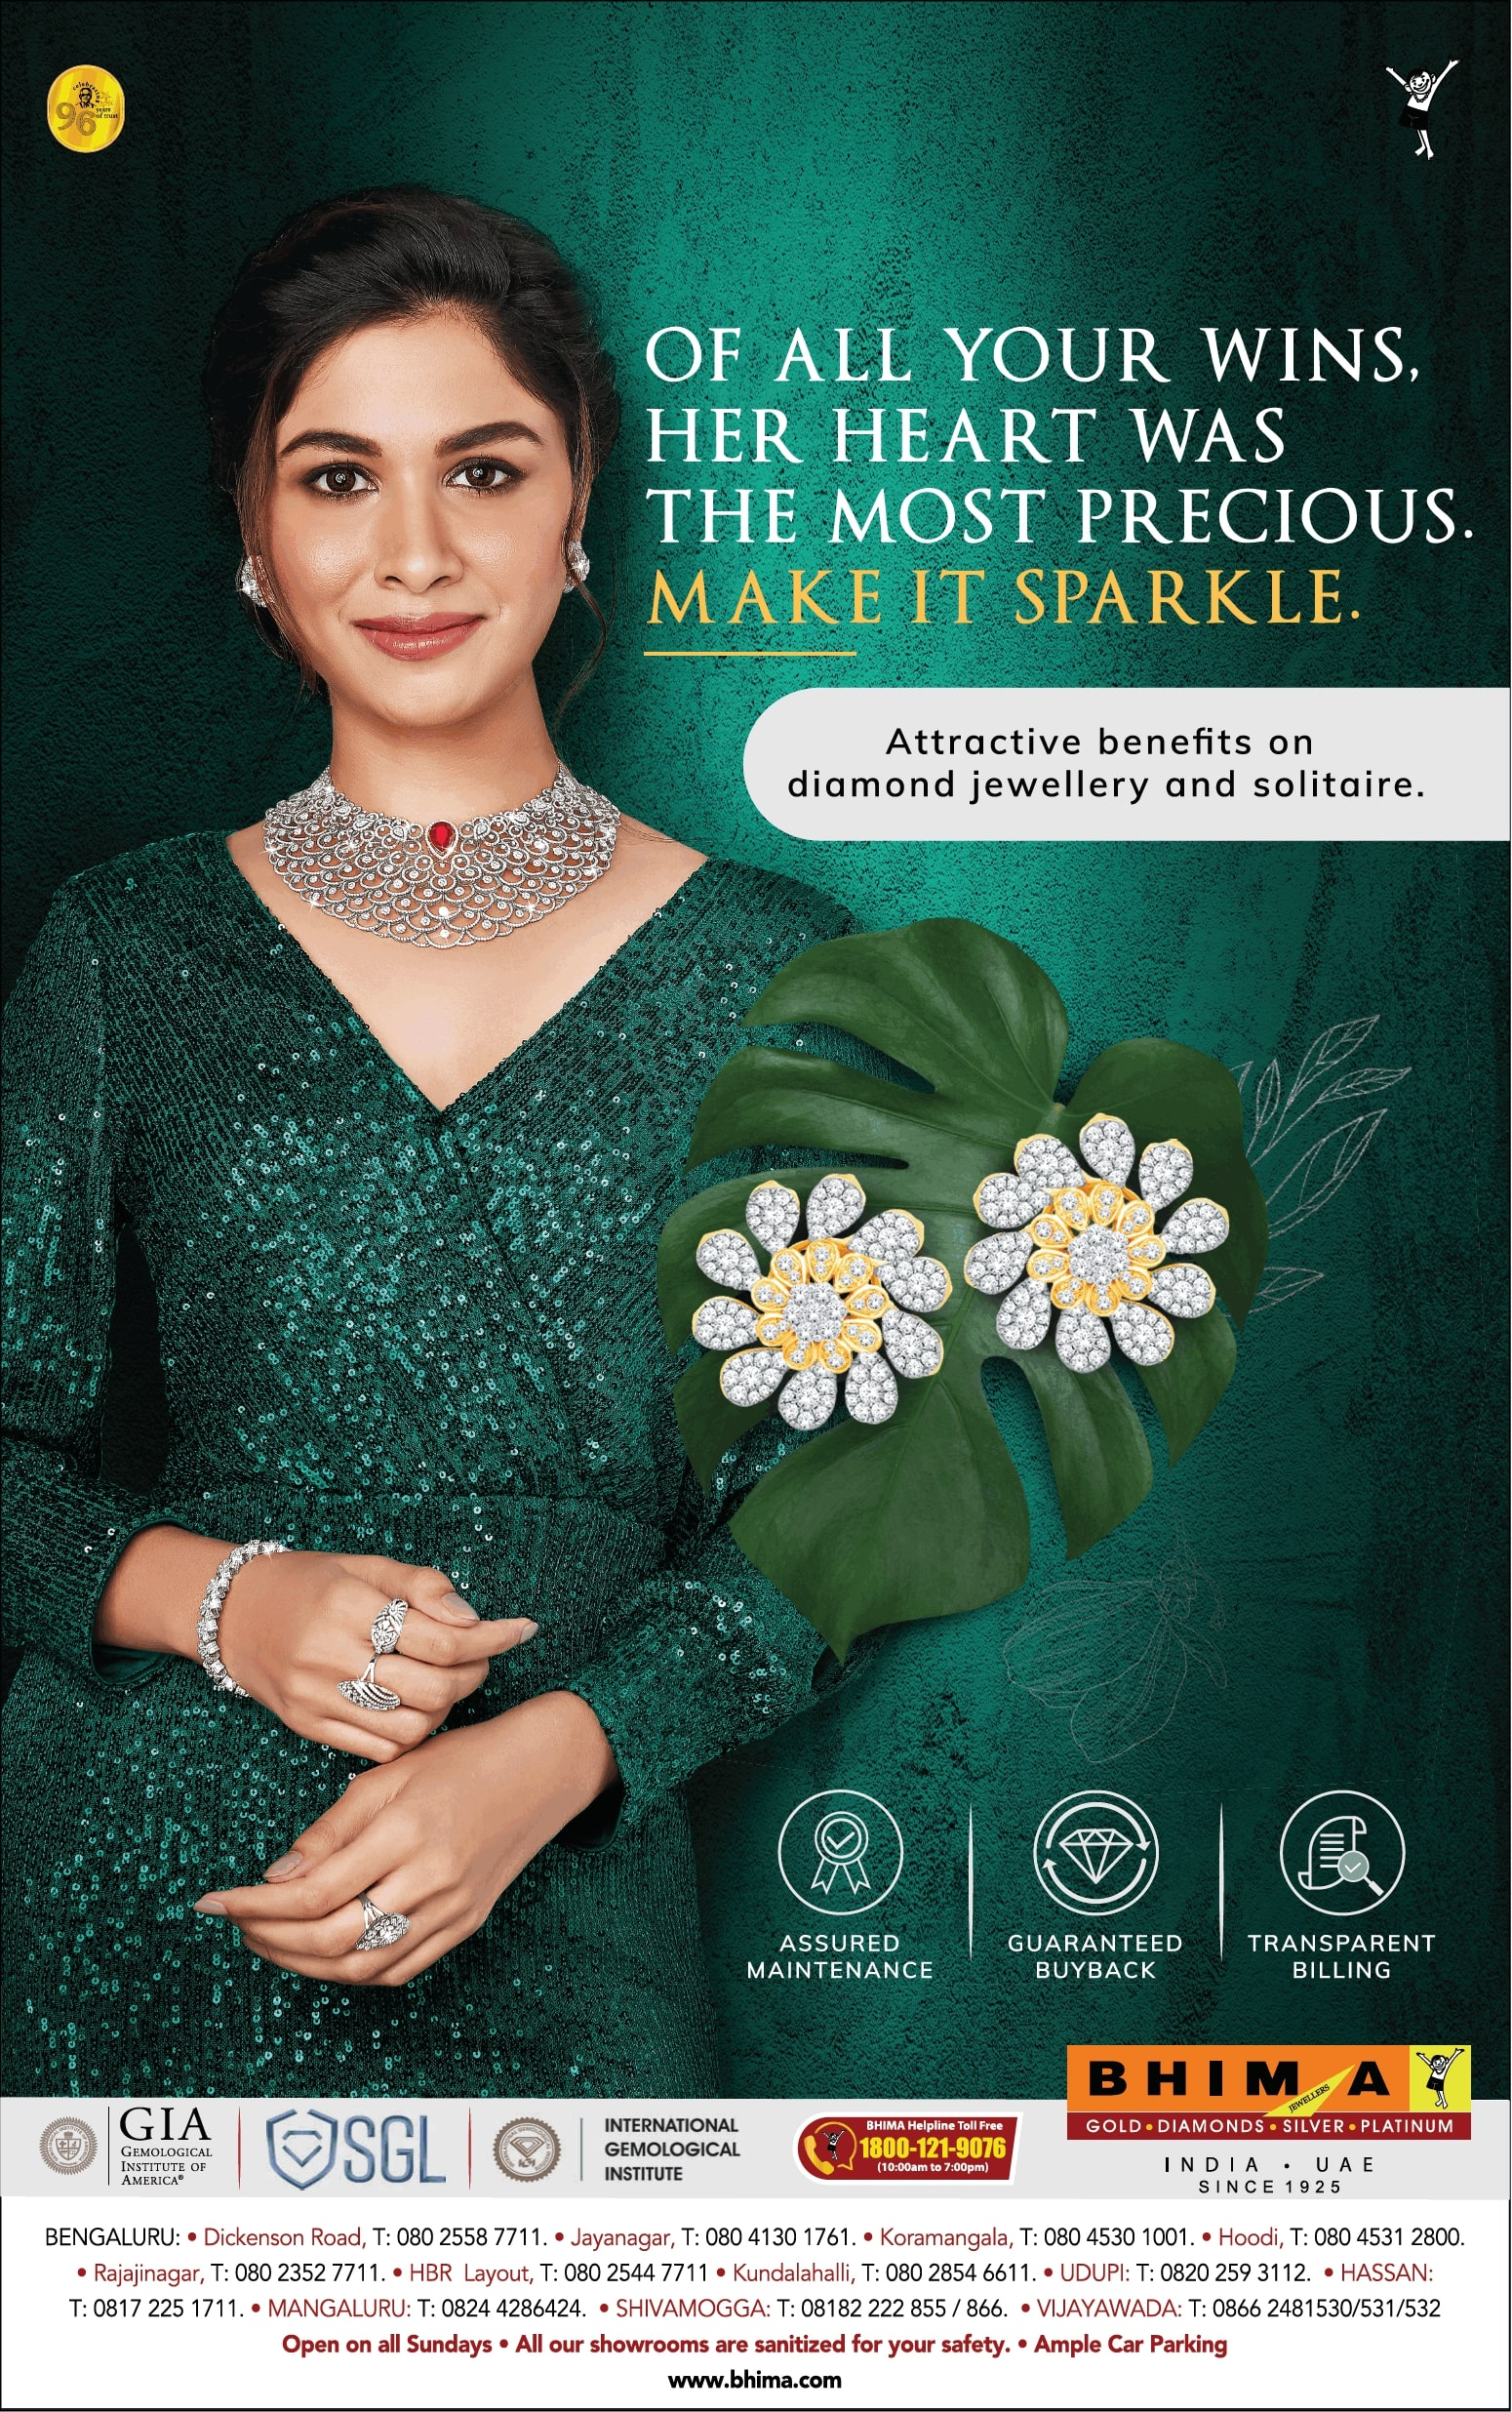 bima-of-all-your-wins-her-heart-was-the-most-precious-make-it-sparkle-ad-bangalore-times-02-01-2021